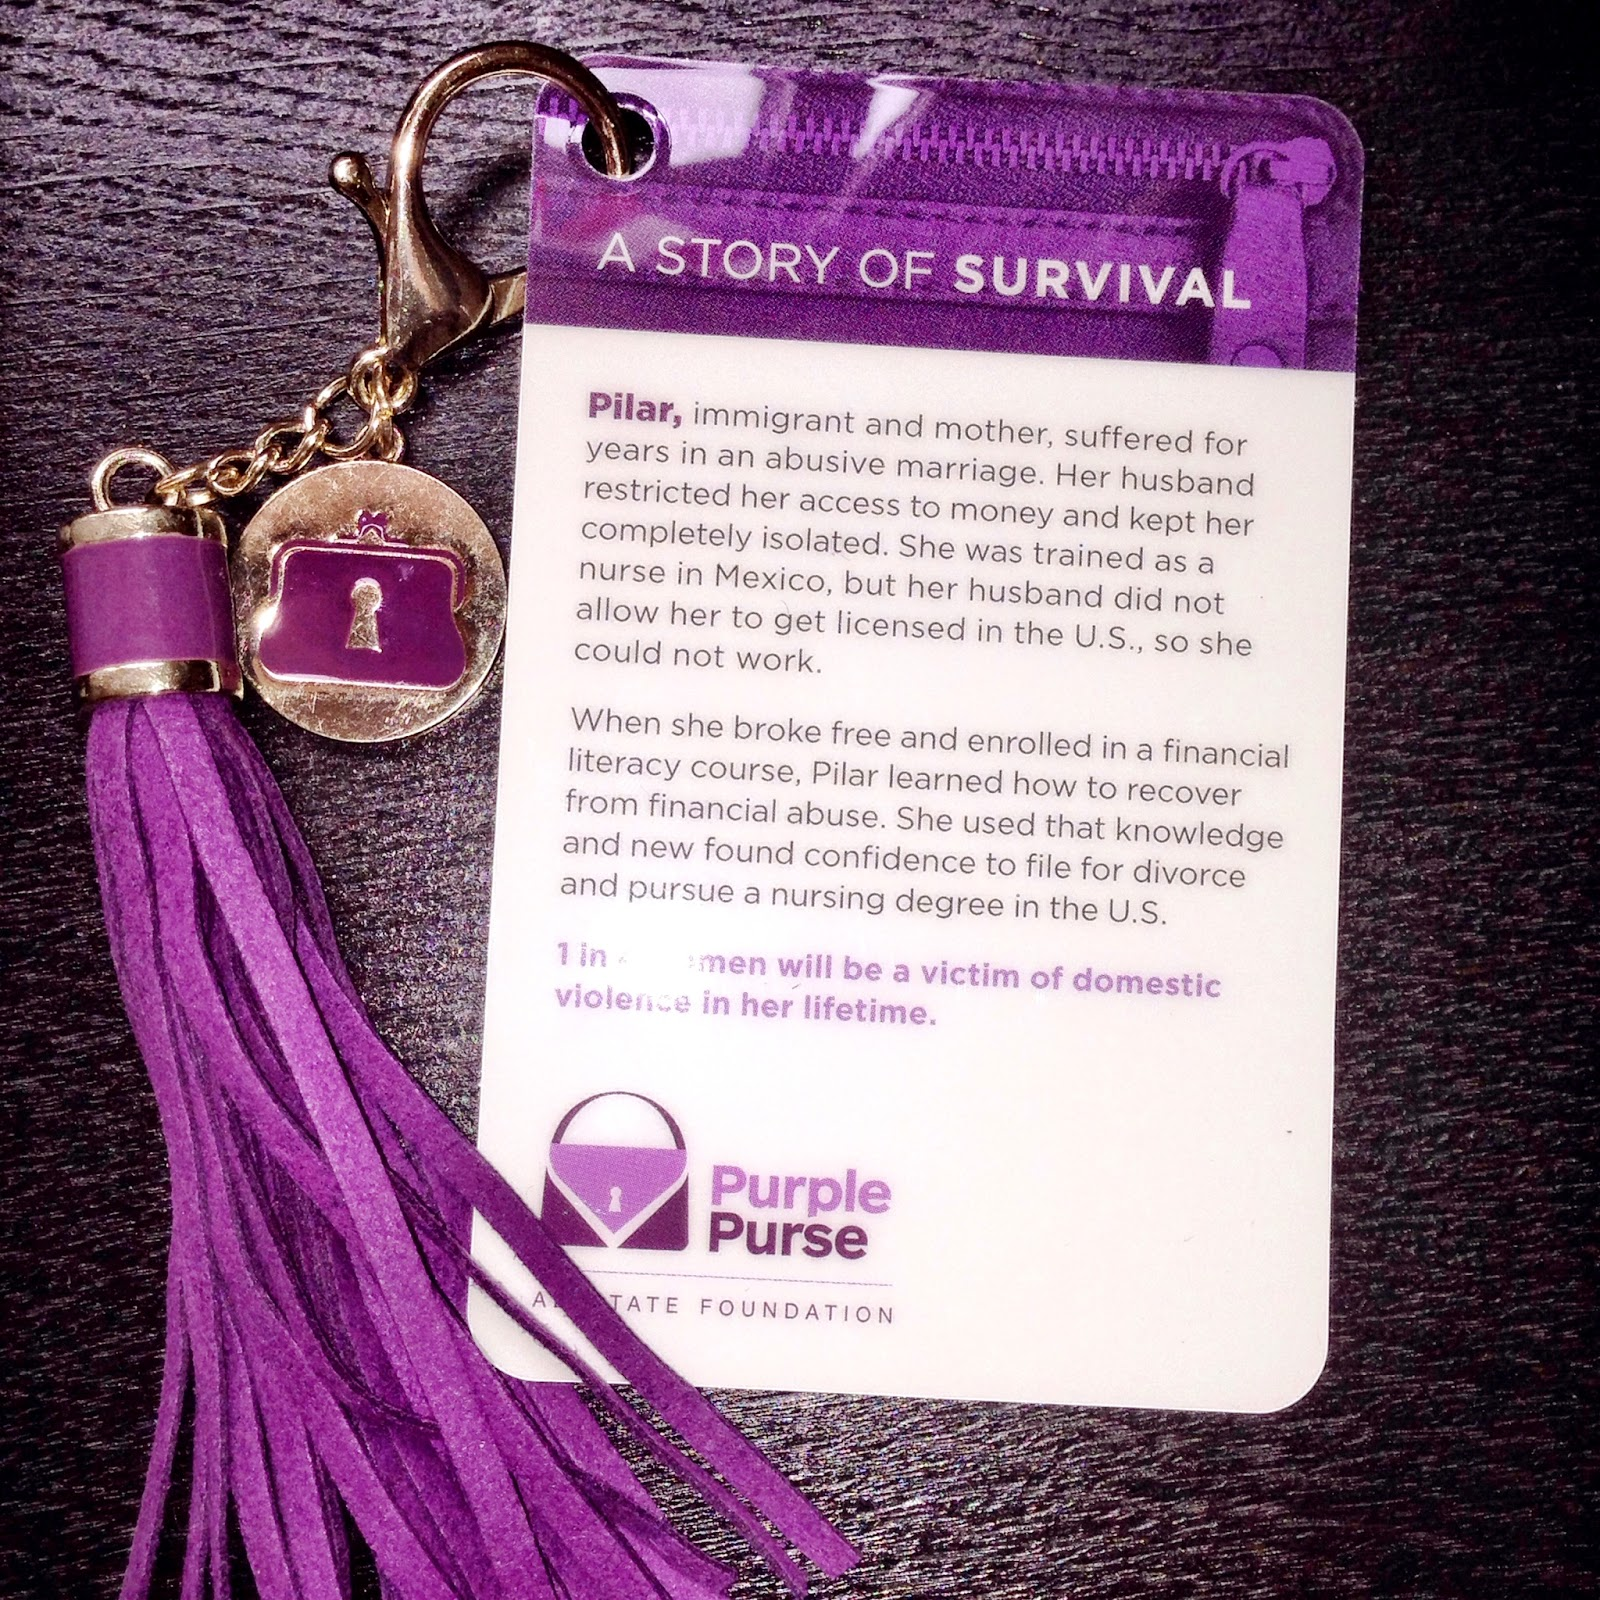 purple purse, purple tassel, allstate foundation, domestic violence, financial abuse, survivor stories, bolso morado